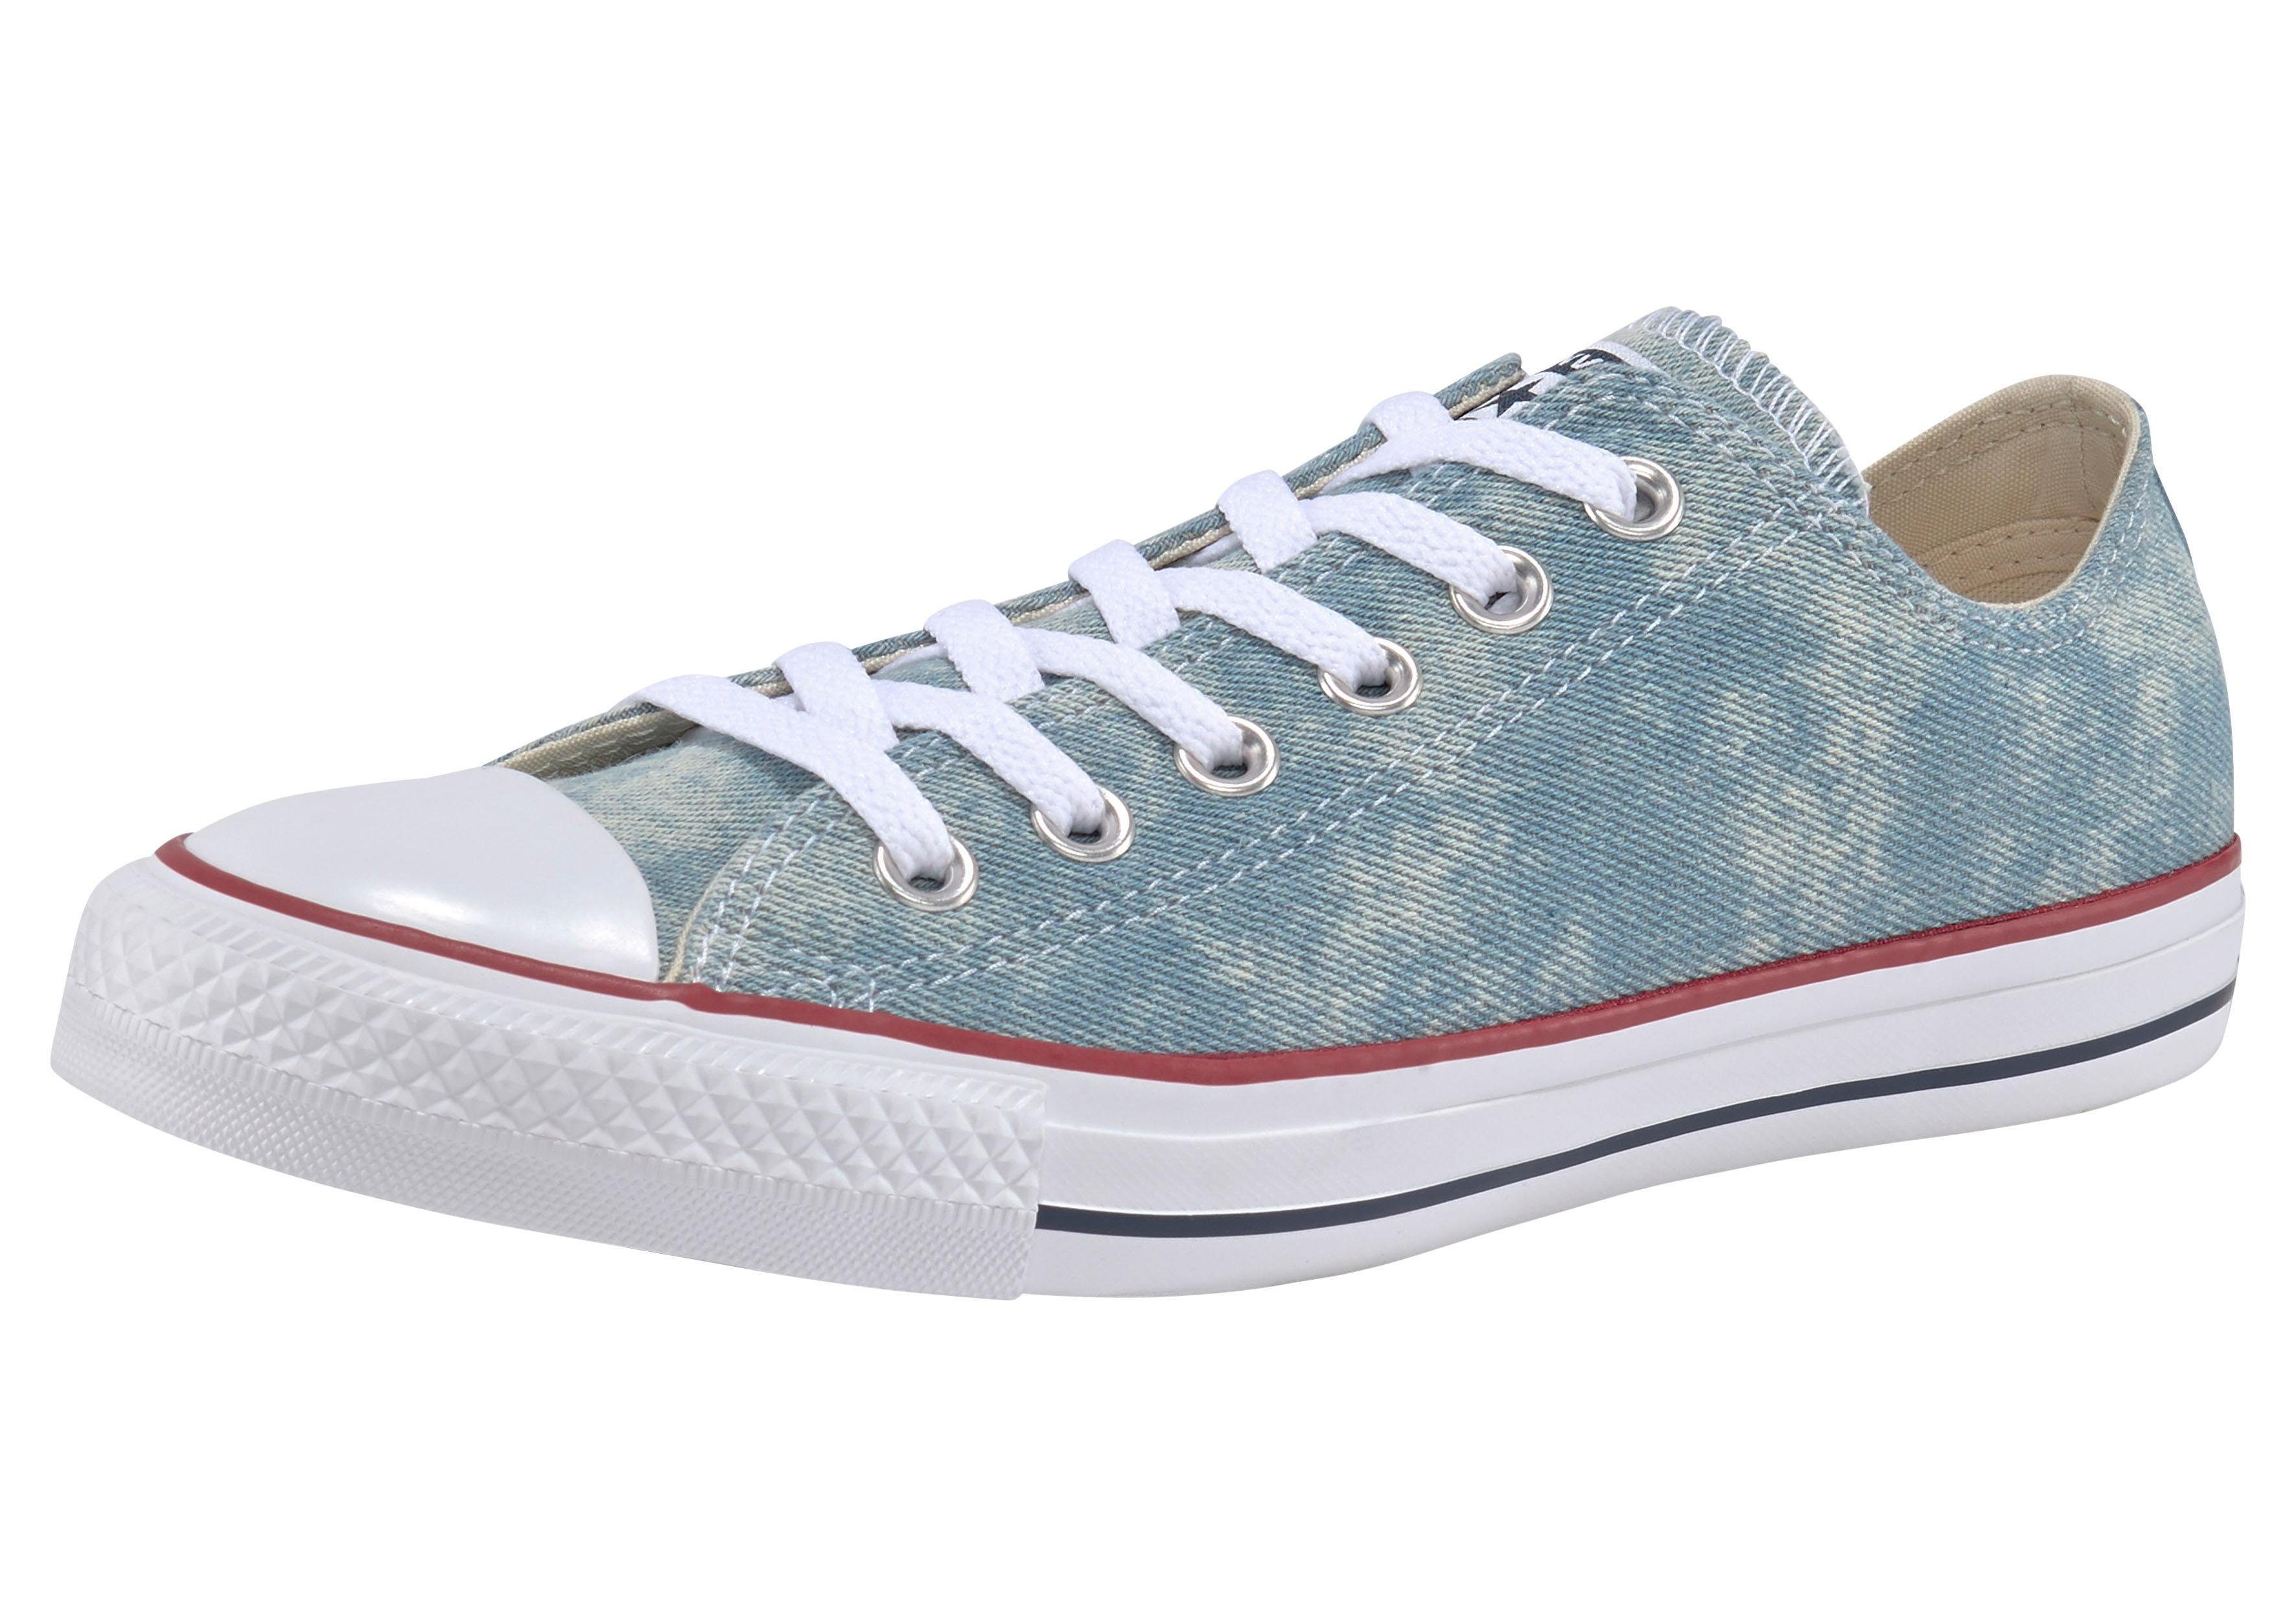 Converse »Chuck Taylor All Star Ox Jeans Washed Out« Sneaker online kaufen | OTTO